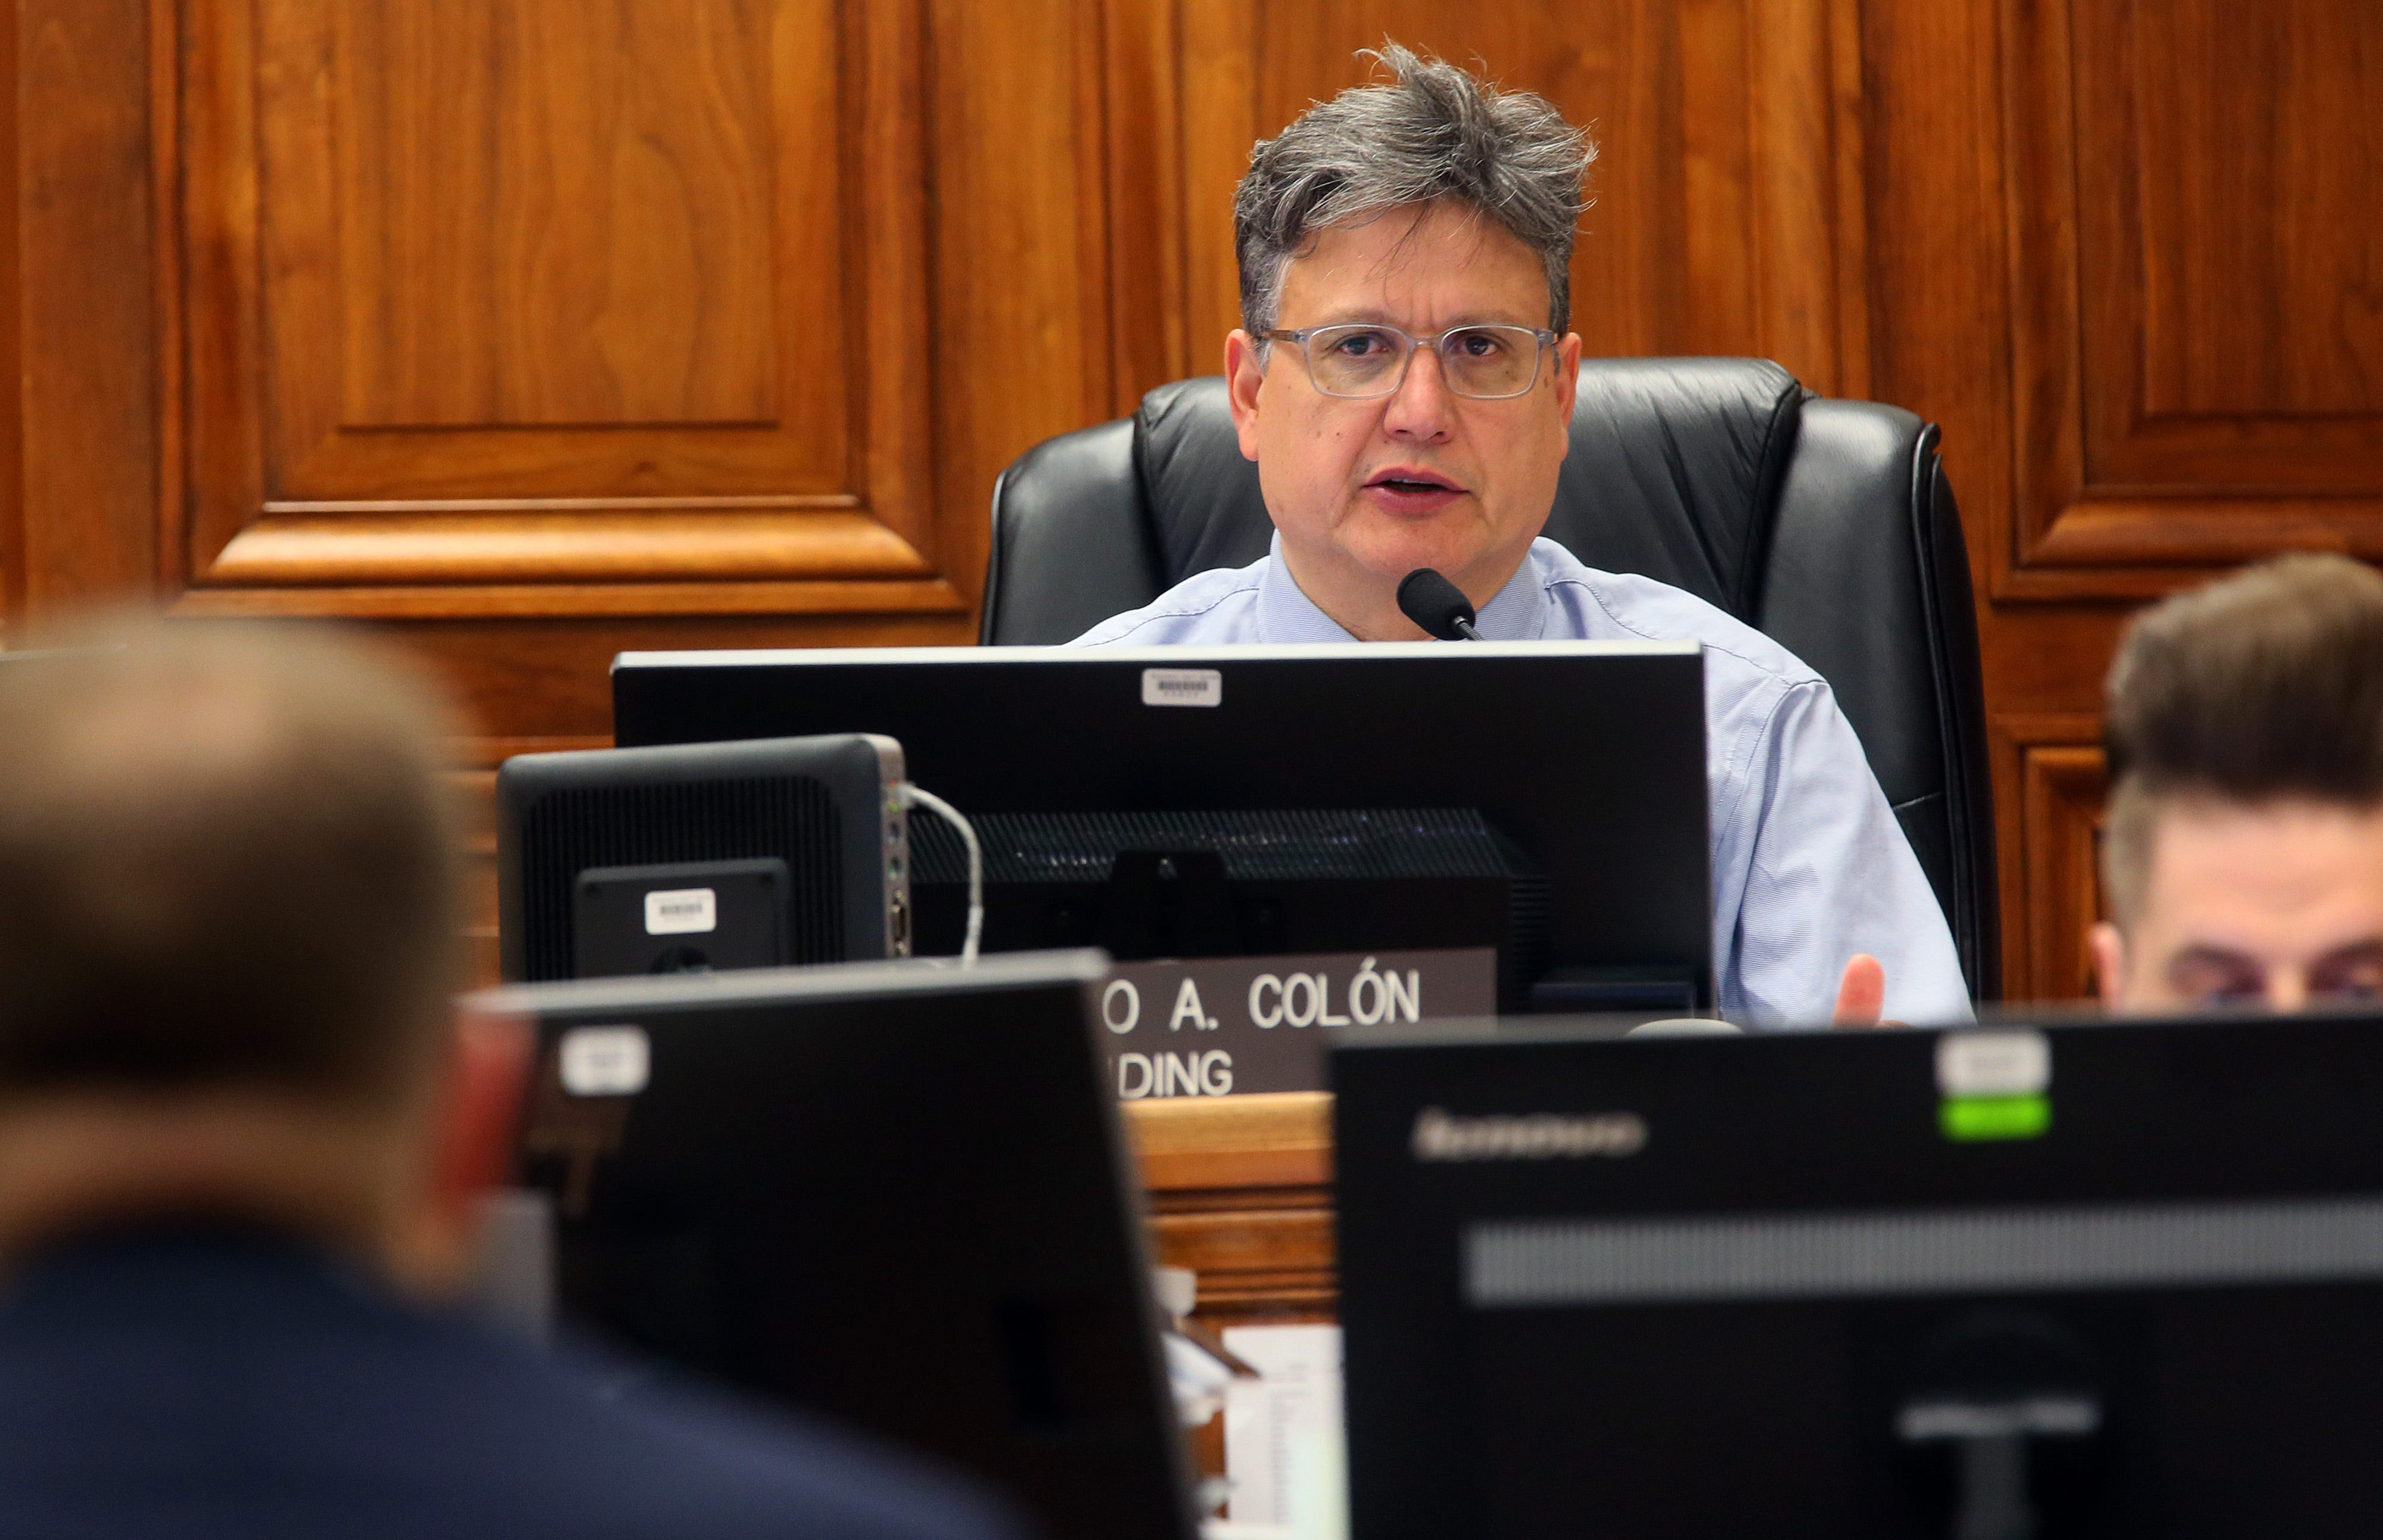 Milwaukee County Circuit Judge Pedro Colón oversees cases at an eviction court hearing  on Jan. 30, 2020.